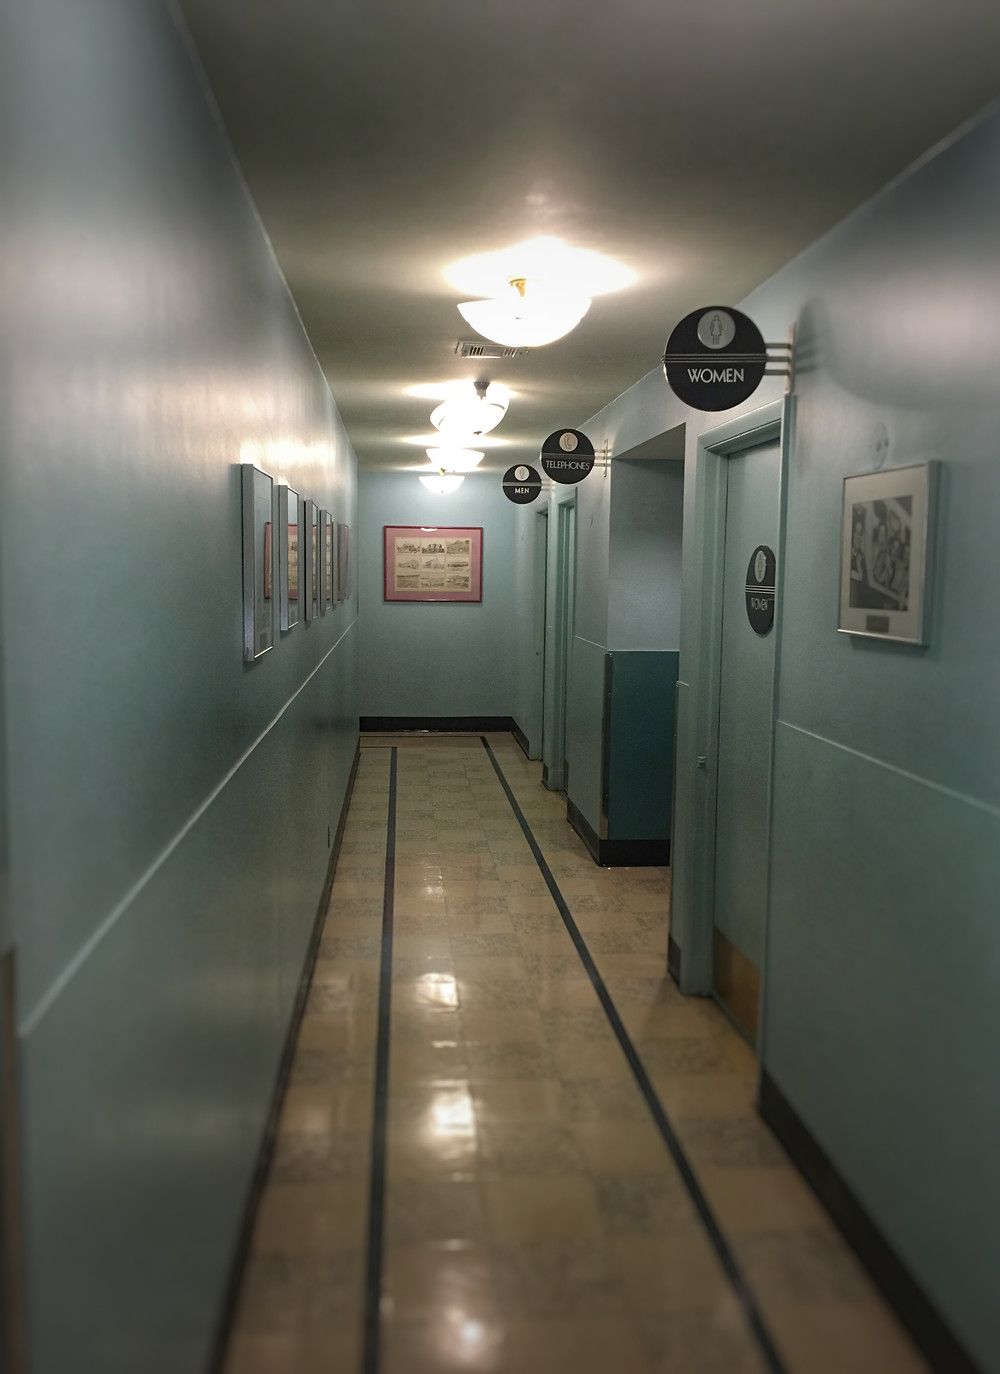 Hallway leading to restrooms at 50's Prime Time Cafe